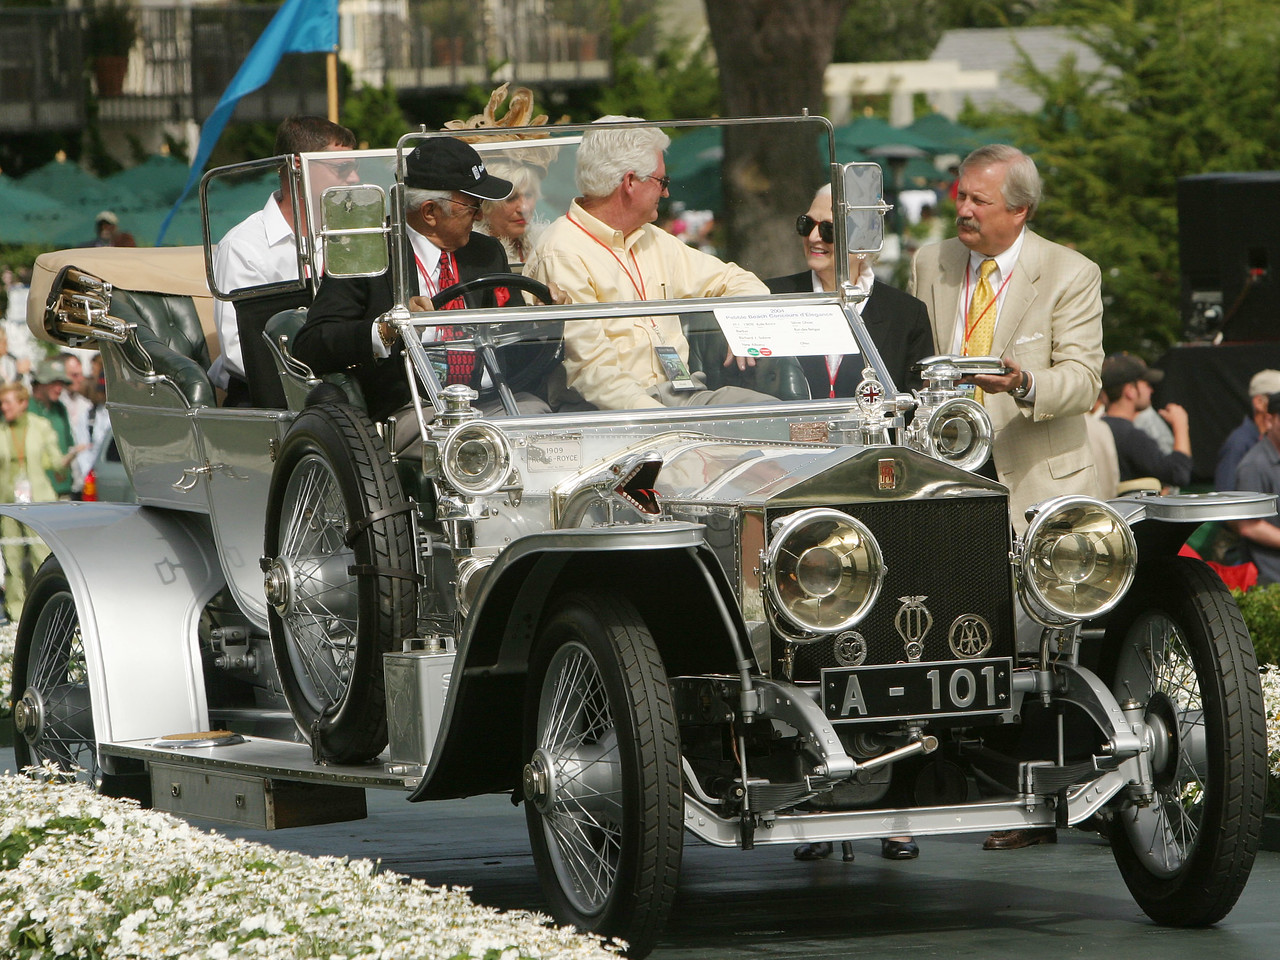 1909 Rolls-Royce Silver Ghost Barker Roi-des-Belges.  Charles A. Chayne Trophy.  Richard J. Solove.